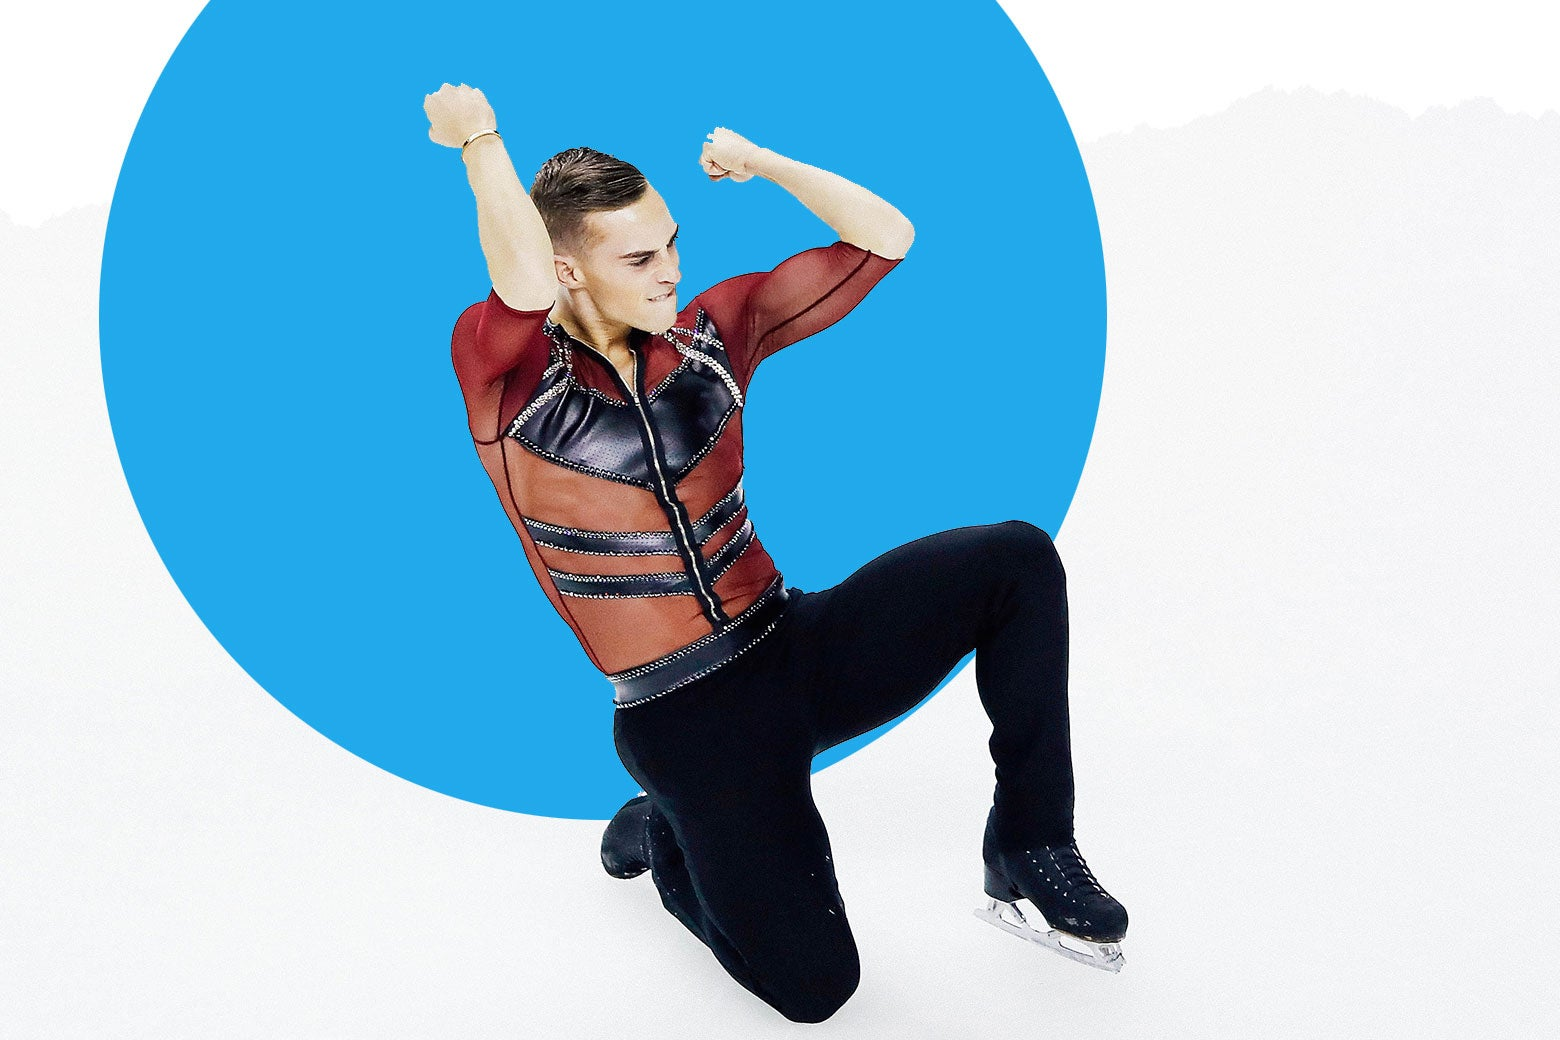 Adam Rippon skating in a red leather shirt.